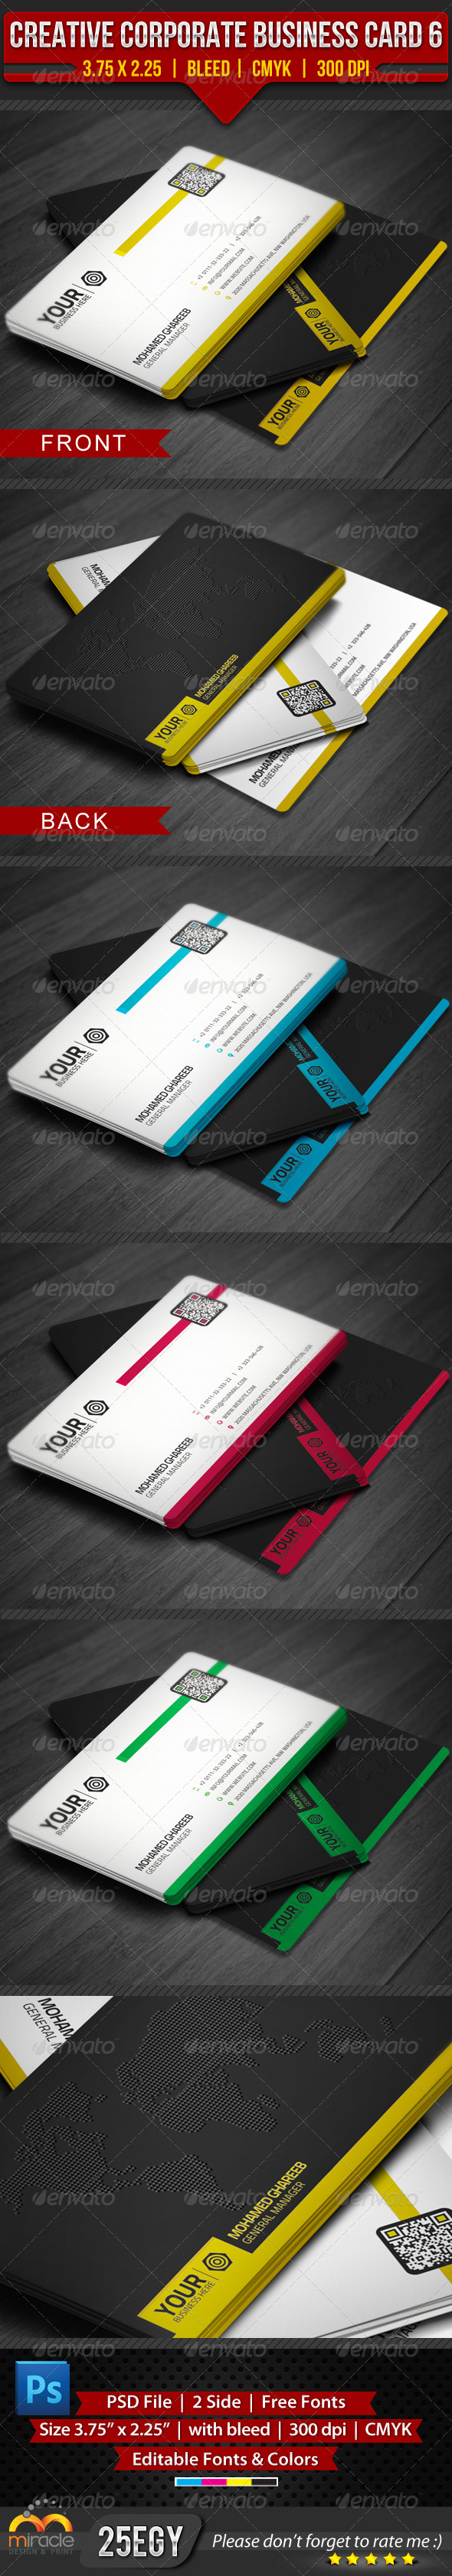 GraphicRiver Creative Corporate Business Card 6 4175328